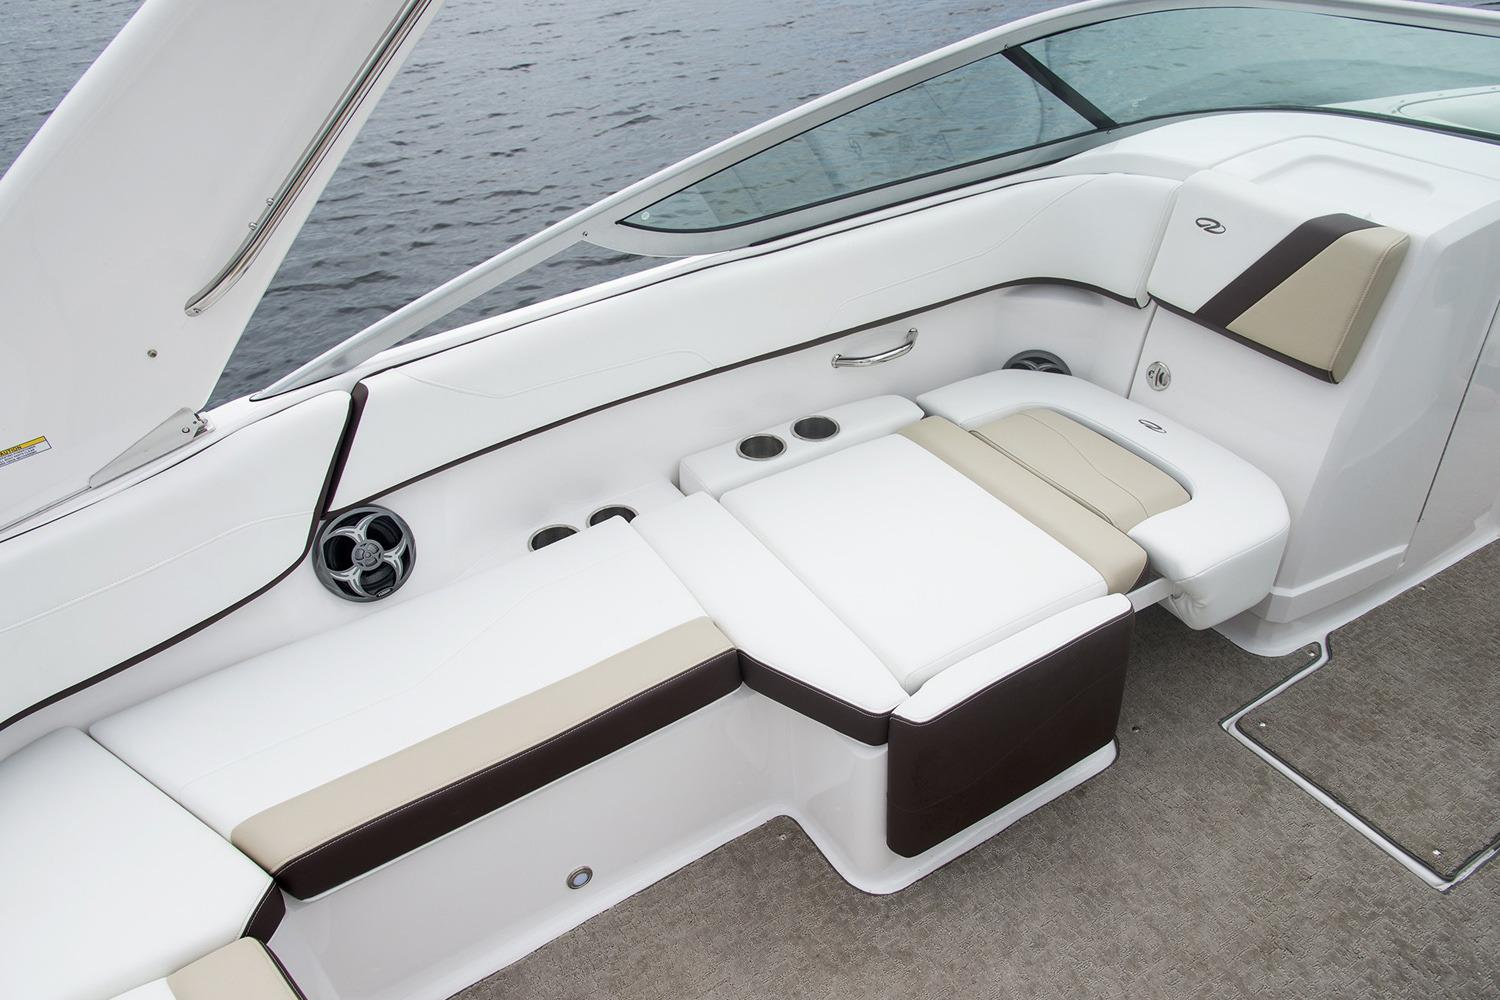 2018 Regal 22 FasDeck in Bridgeport, New York